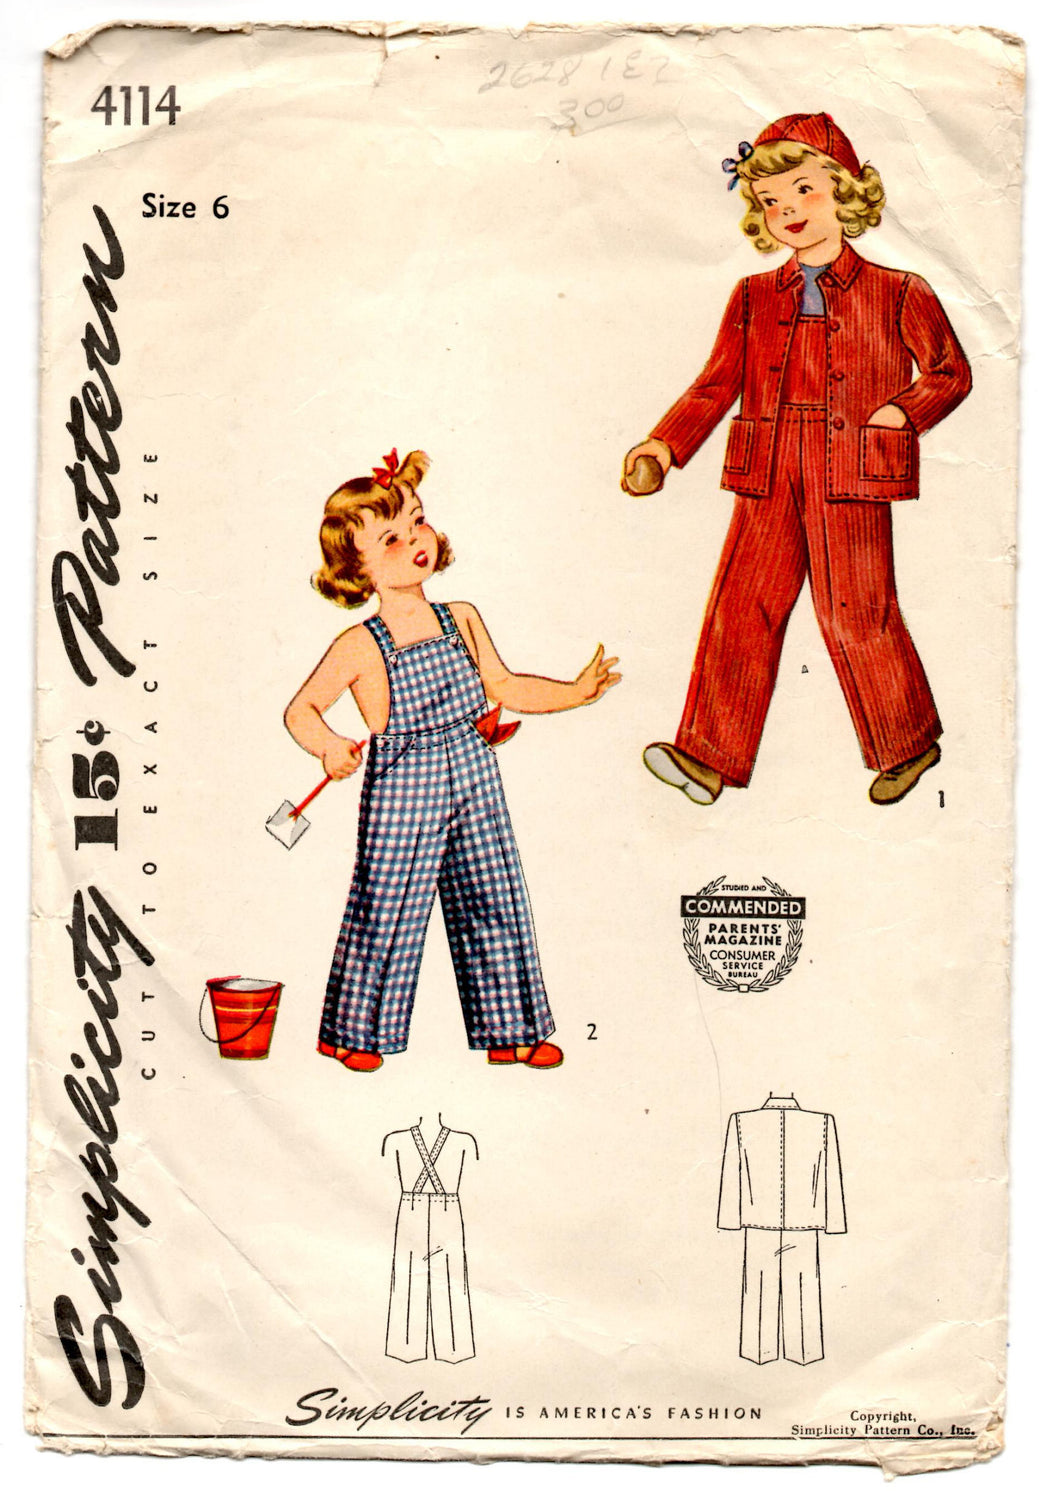 1940's Simplicity Child's Jacket, Overalls, and Cap Pattern - 6 years - No. 4114